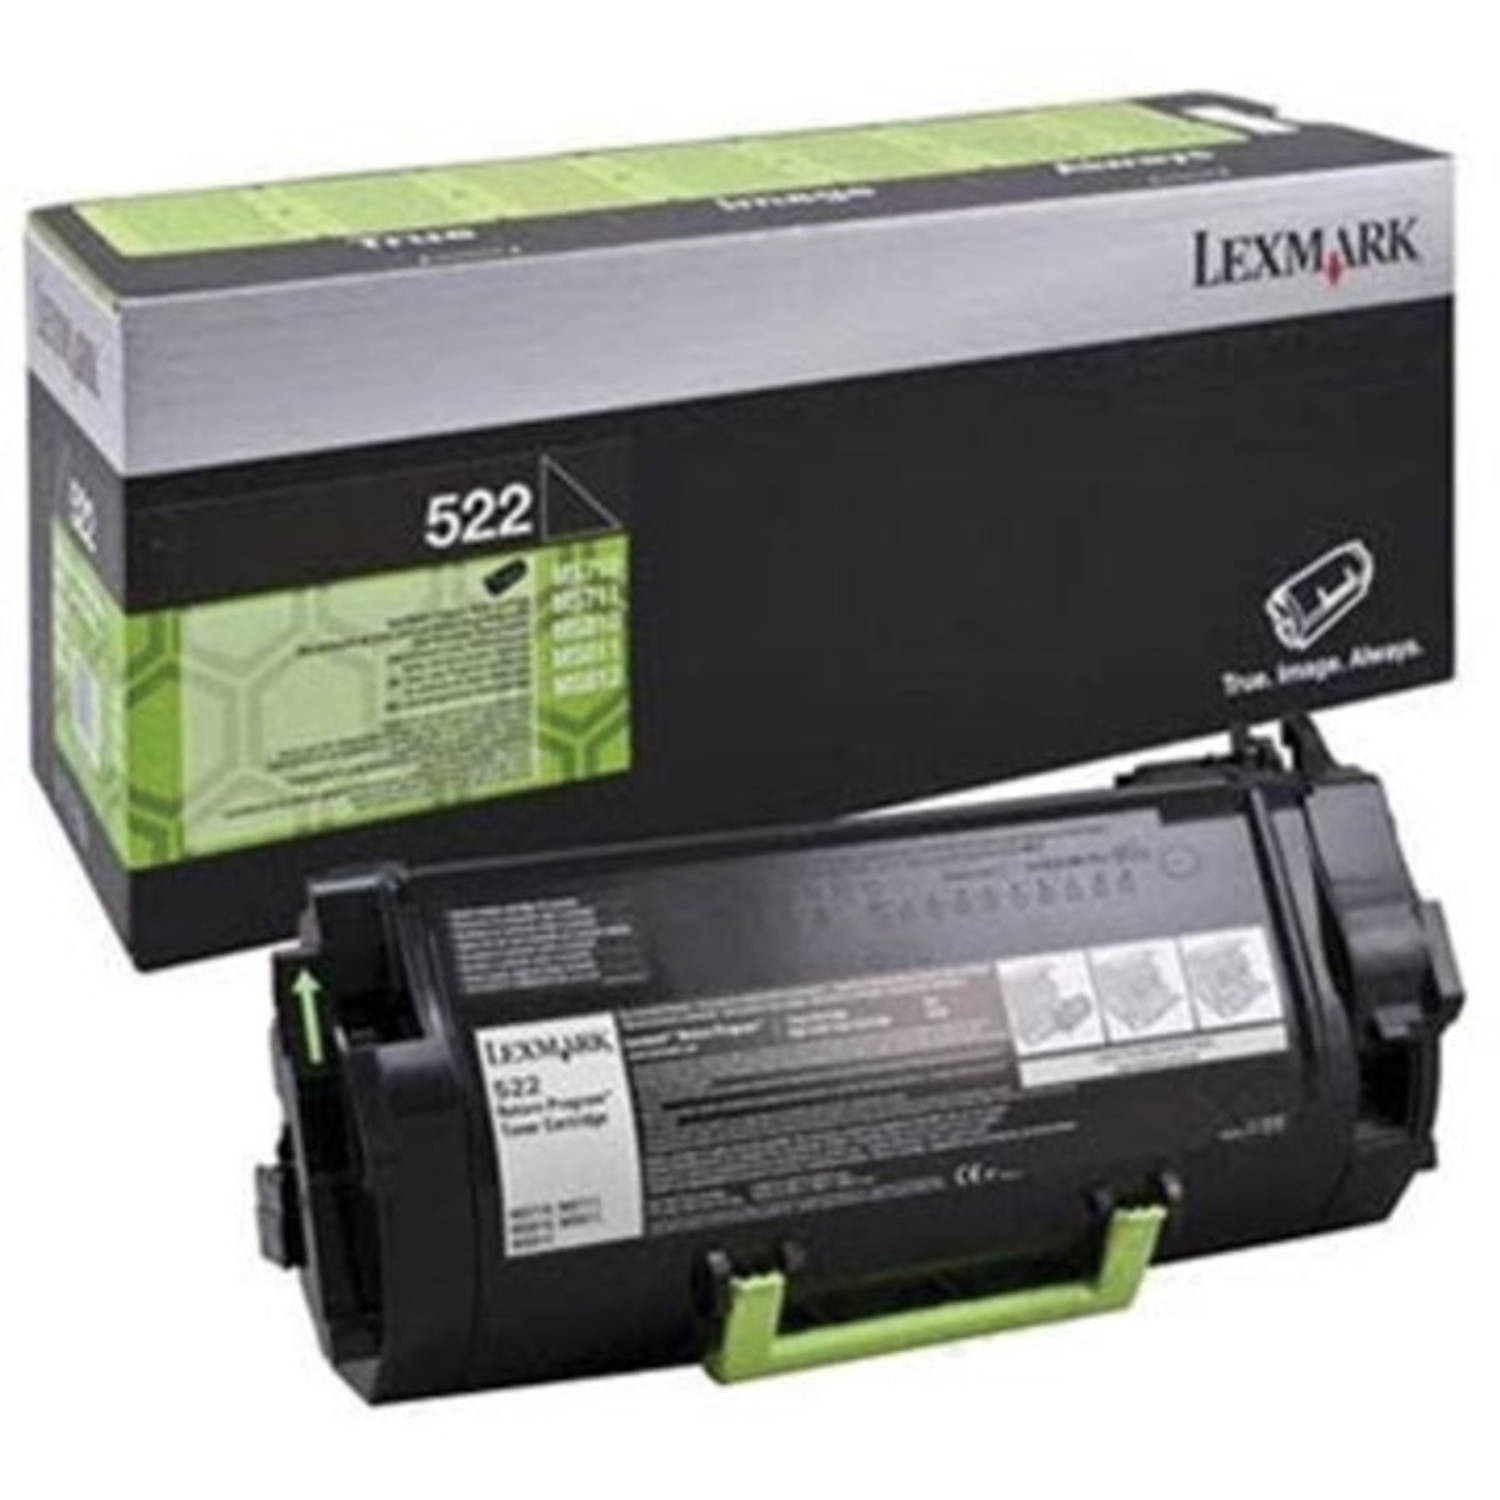 Lexmark Toner Kit zwart return program 522 - 6000 pagina's - 52D2000